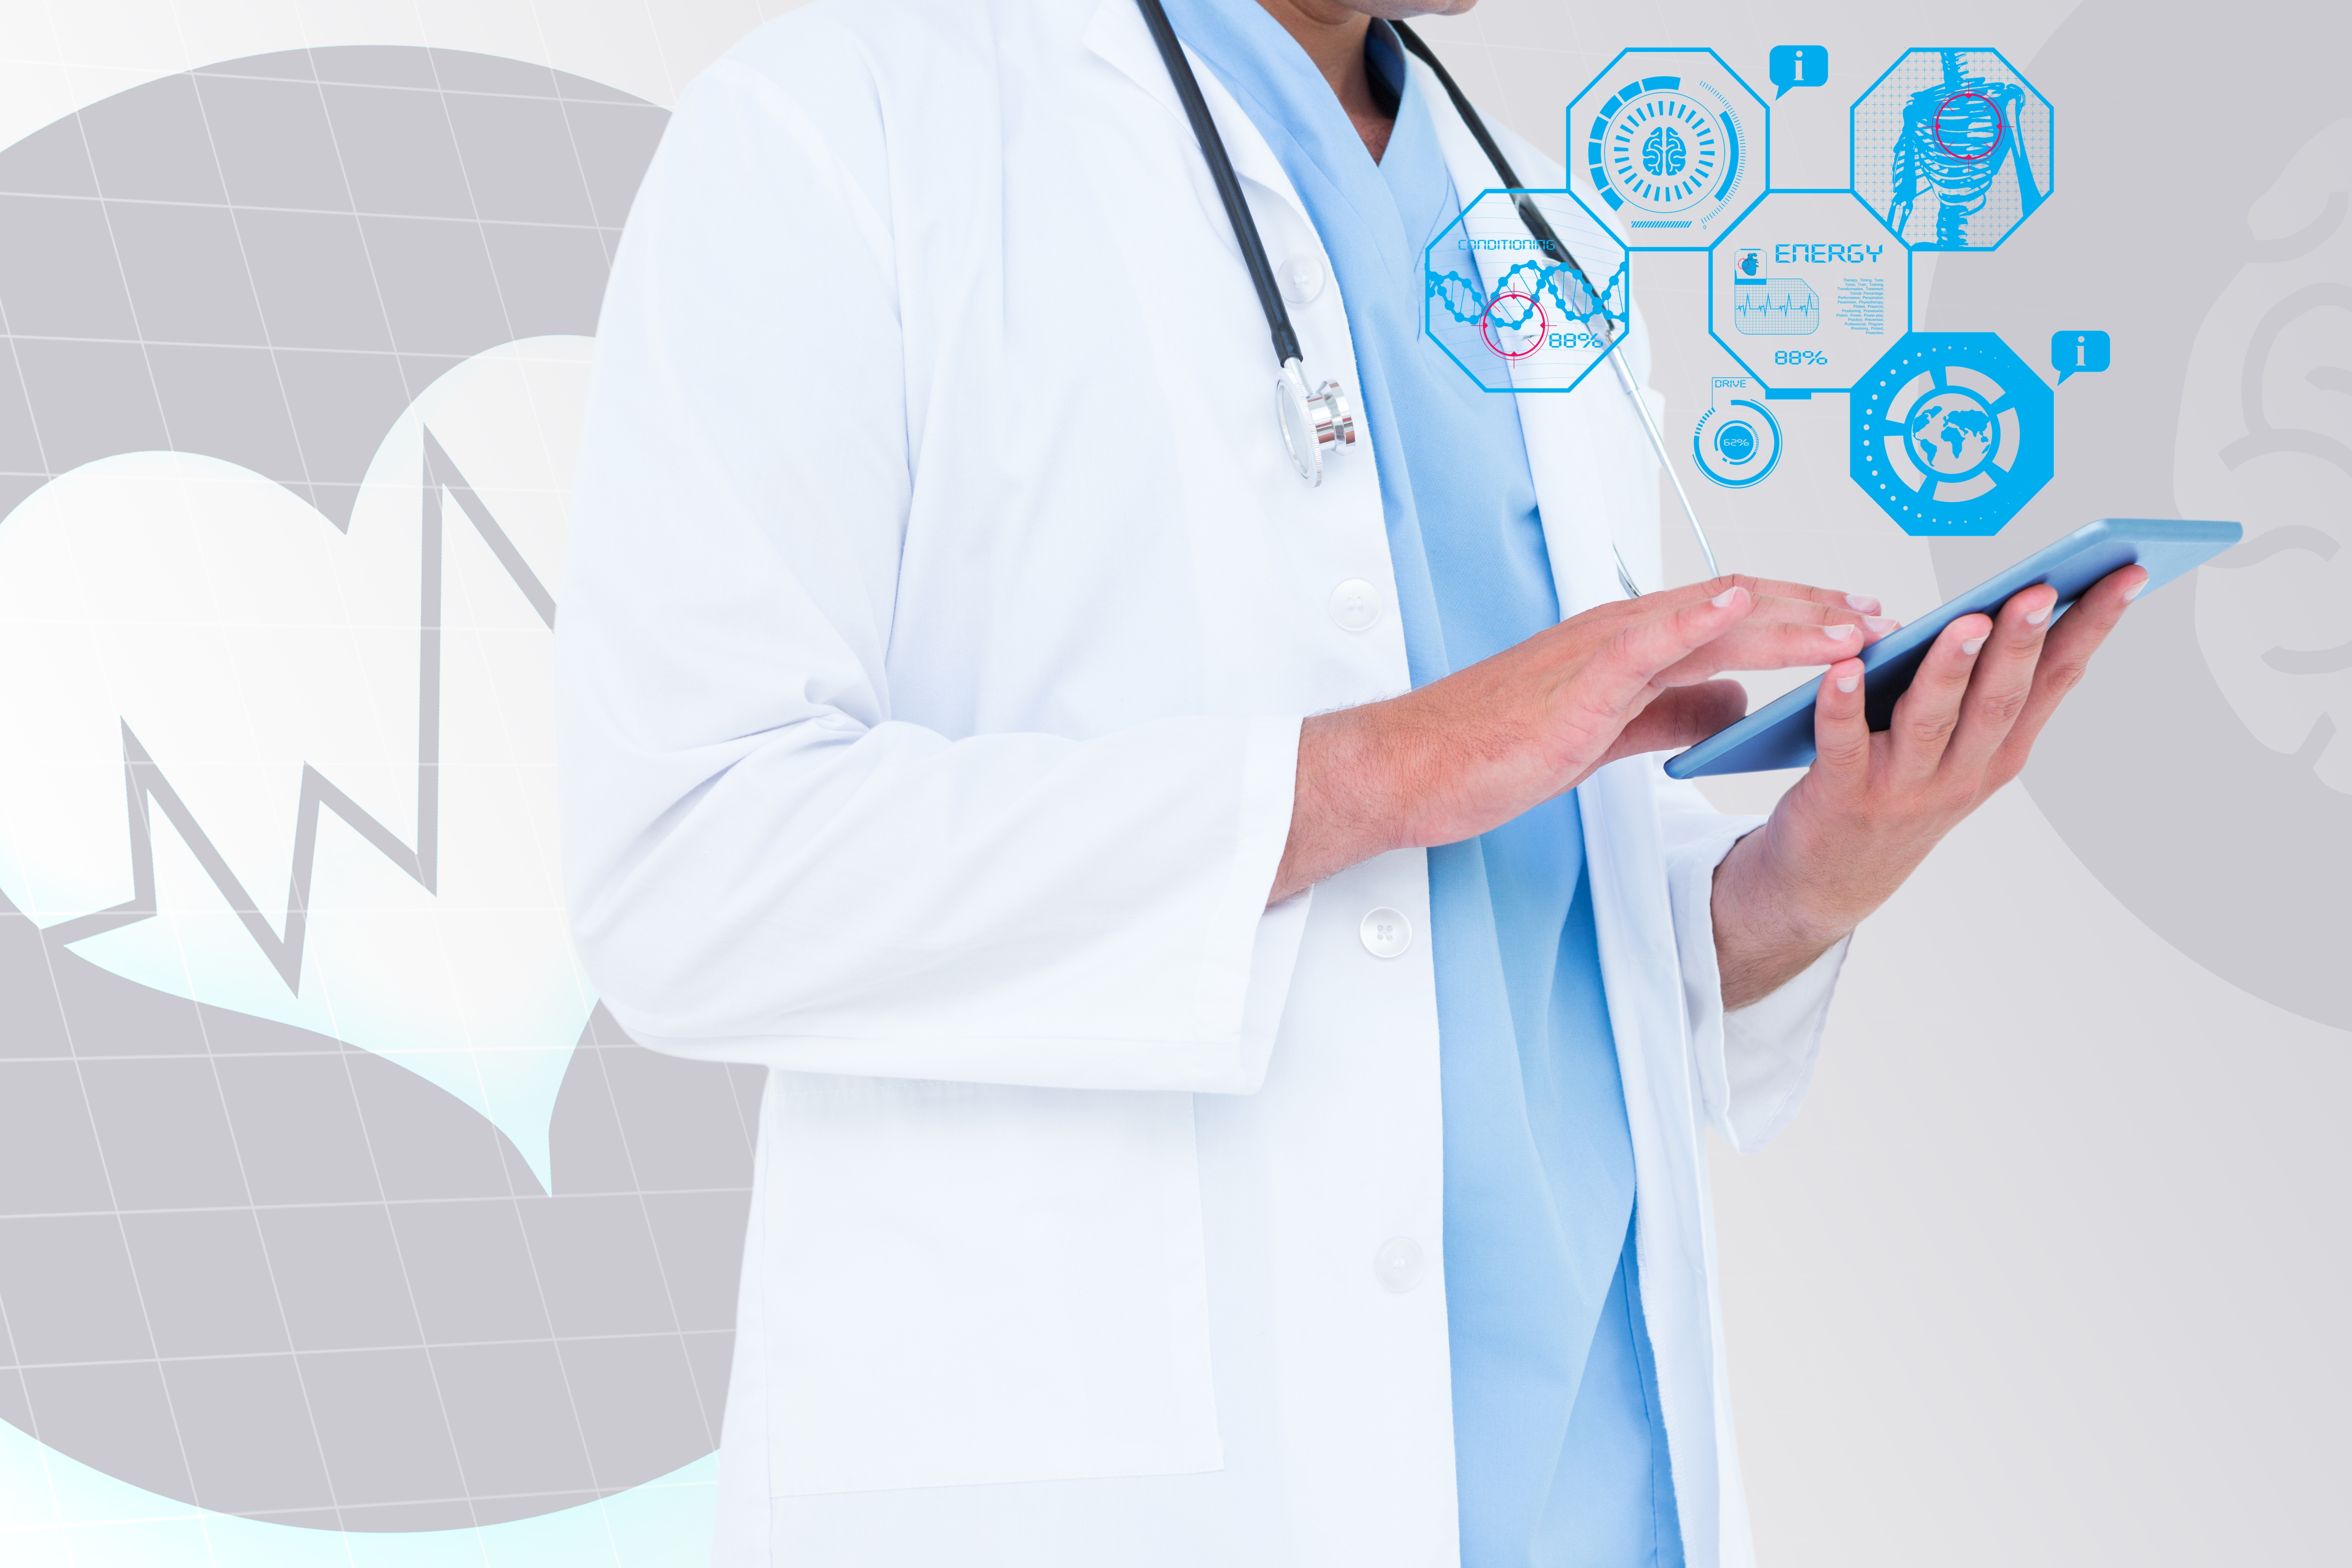 How is AI shaping the Healthcare Industry? - with practices